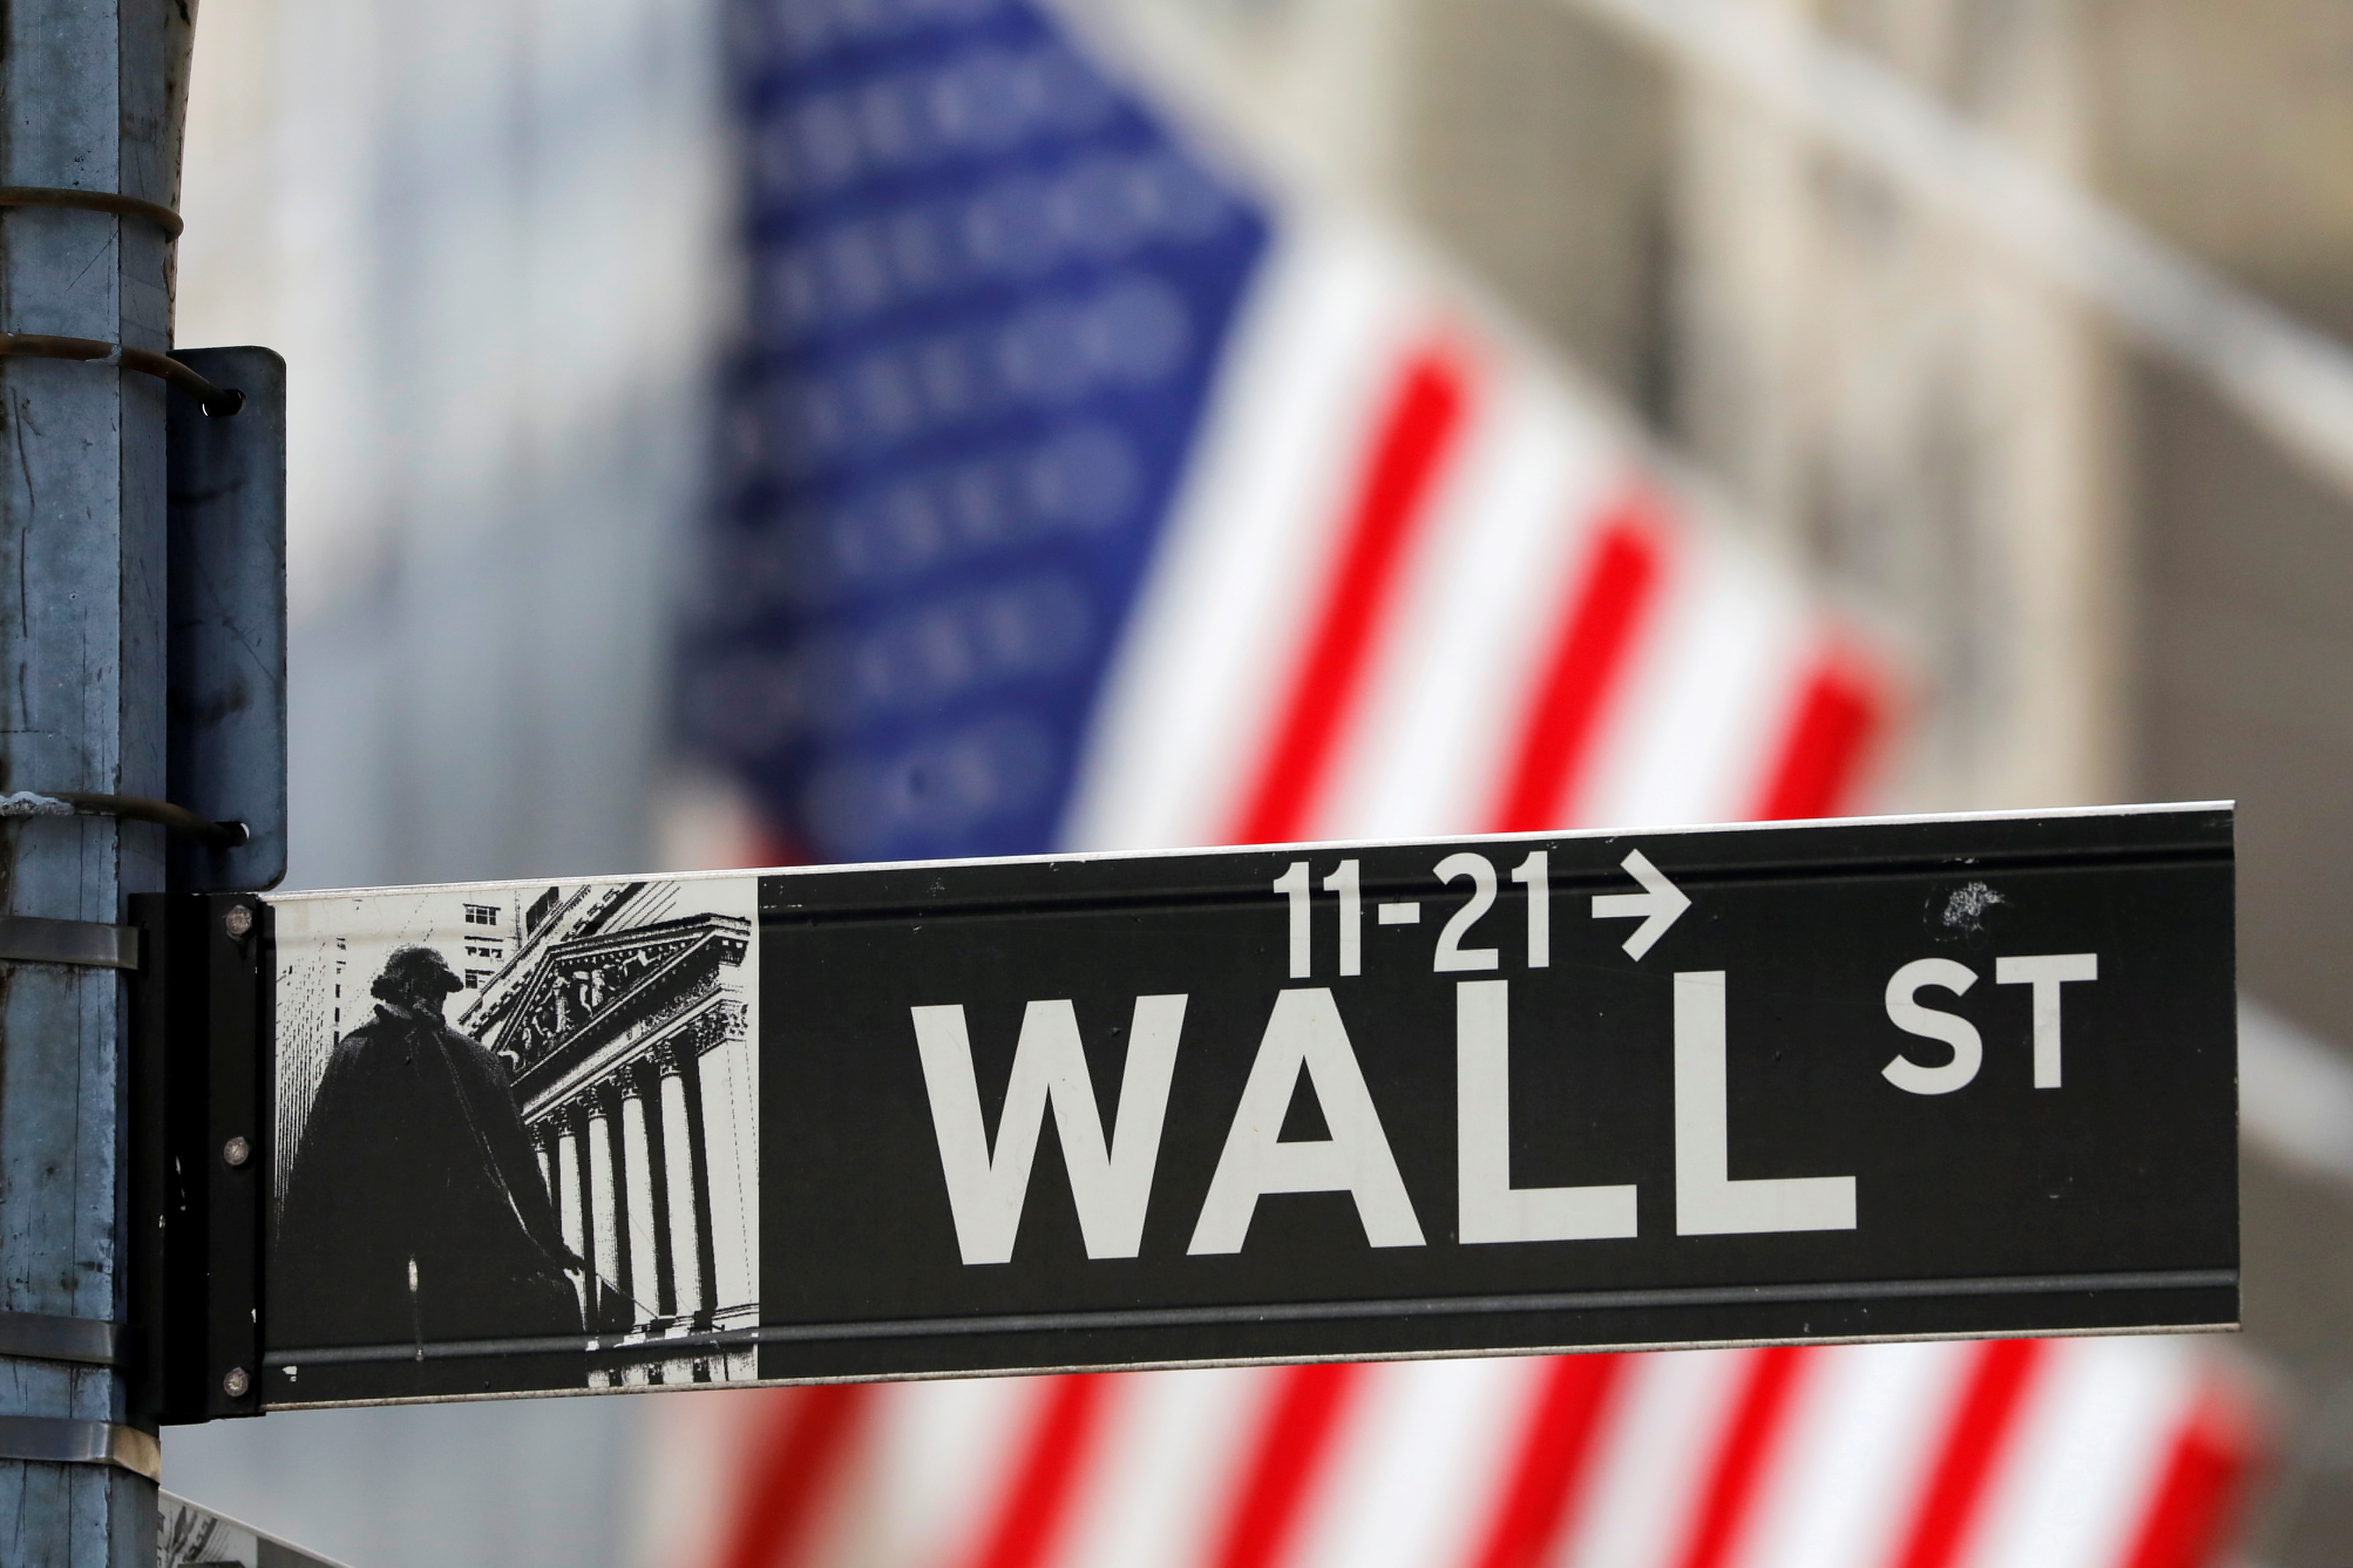 A street sign for Wall Street is seen outside the New York Stock Exchange (NYSE) in New York City, New York, U.S., July 19, 2021. REUTERS/Andrew Kelly/File Photo